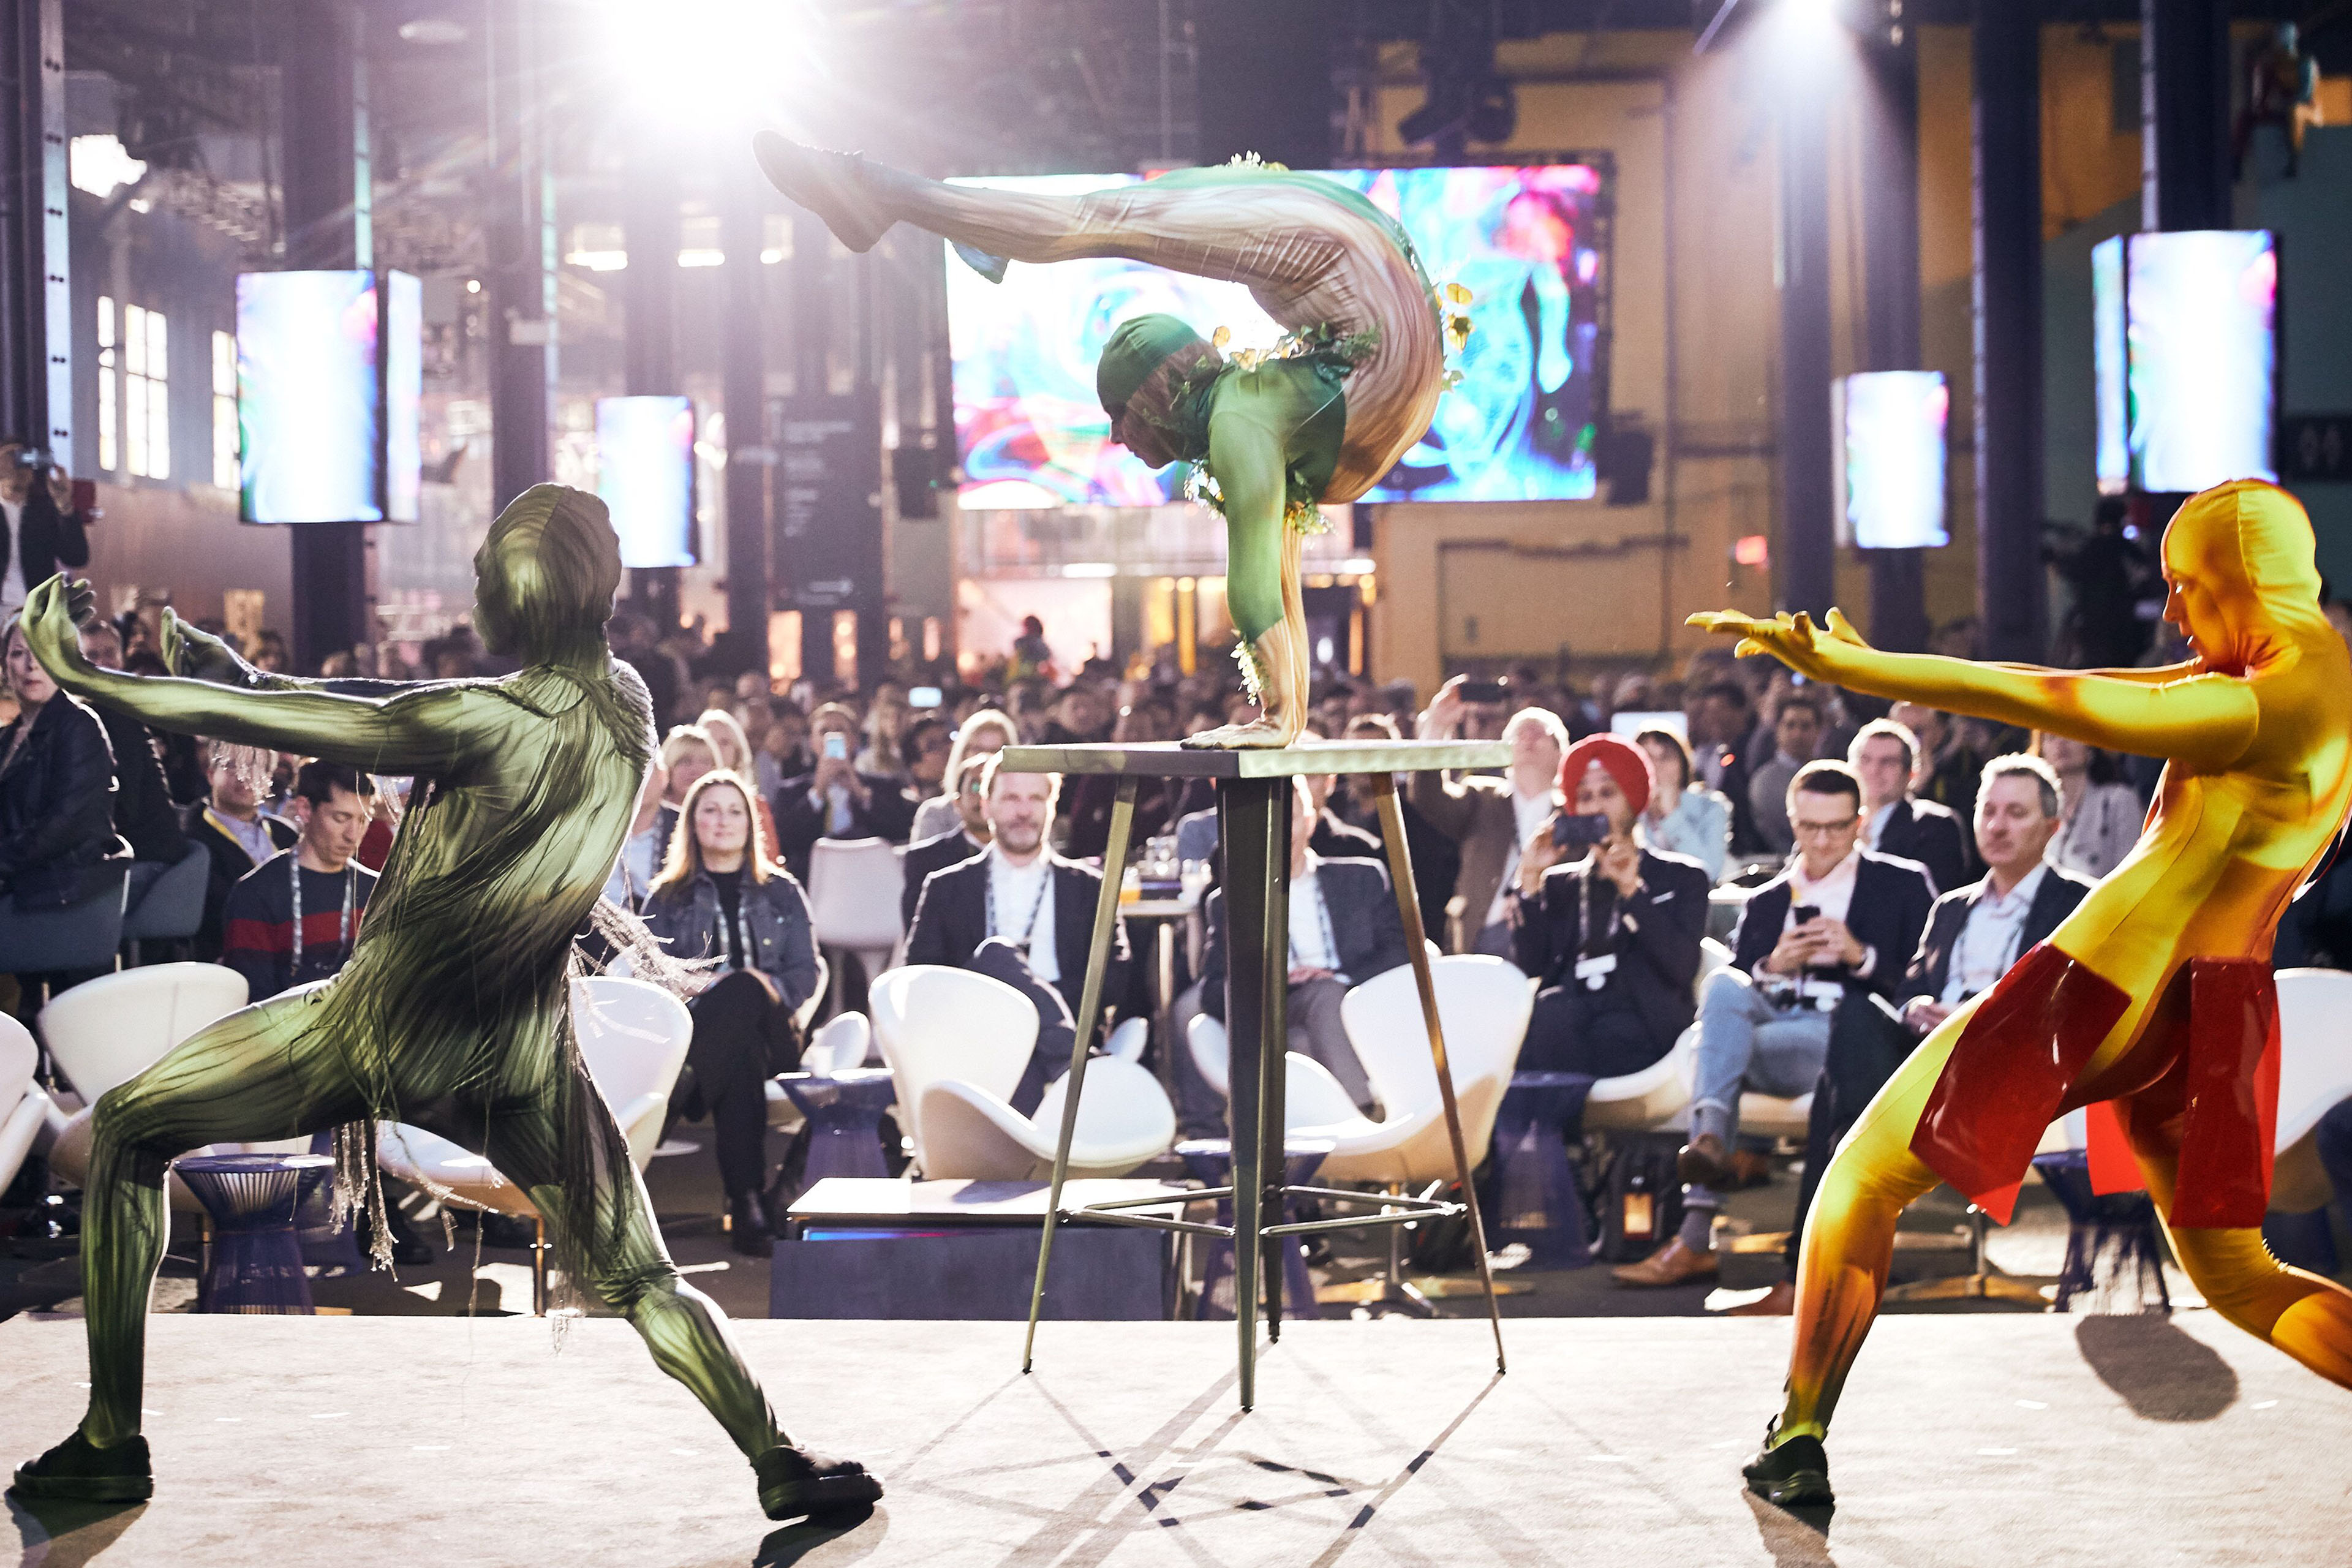 Acrobat performers Innovation Realized